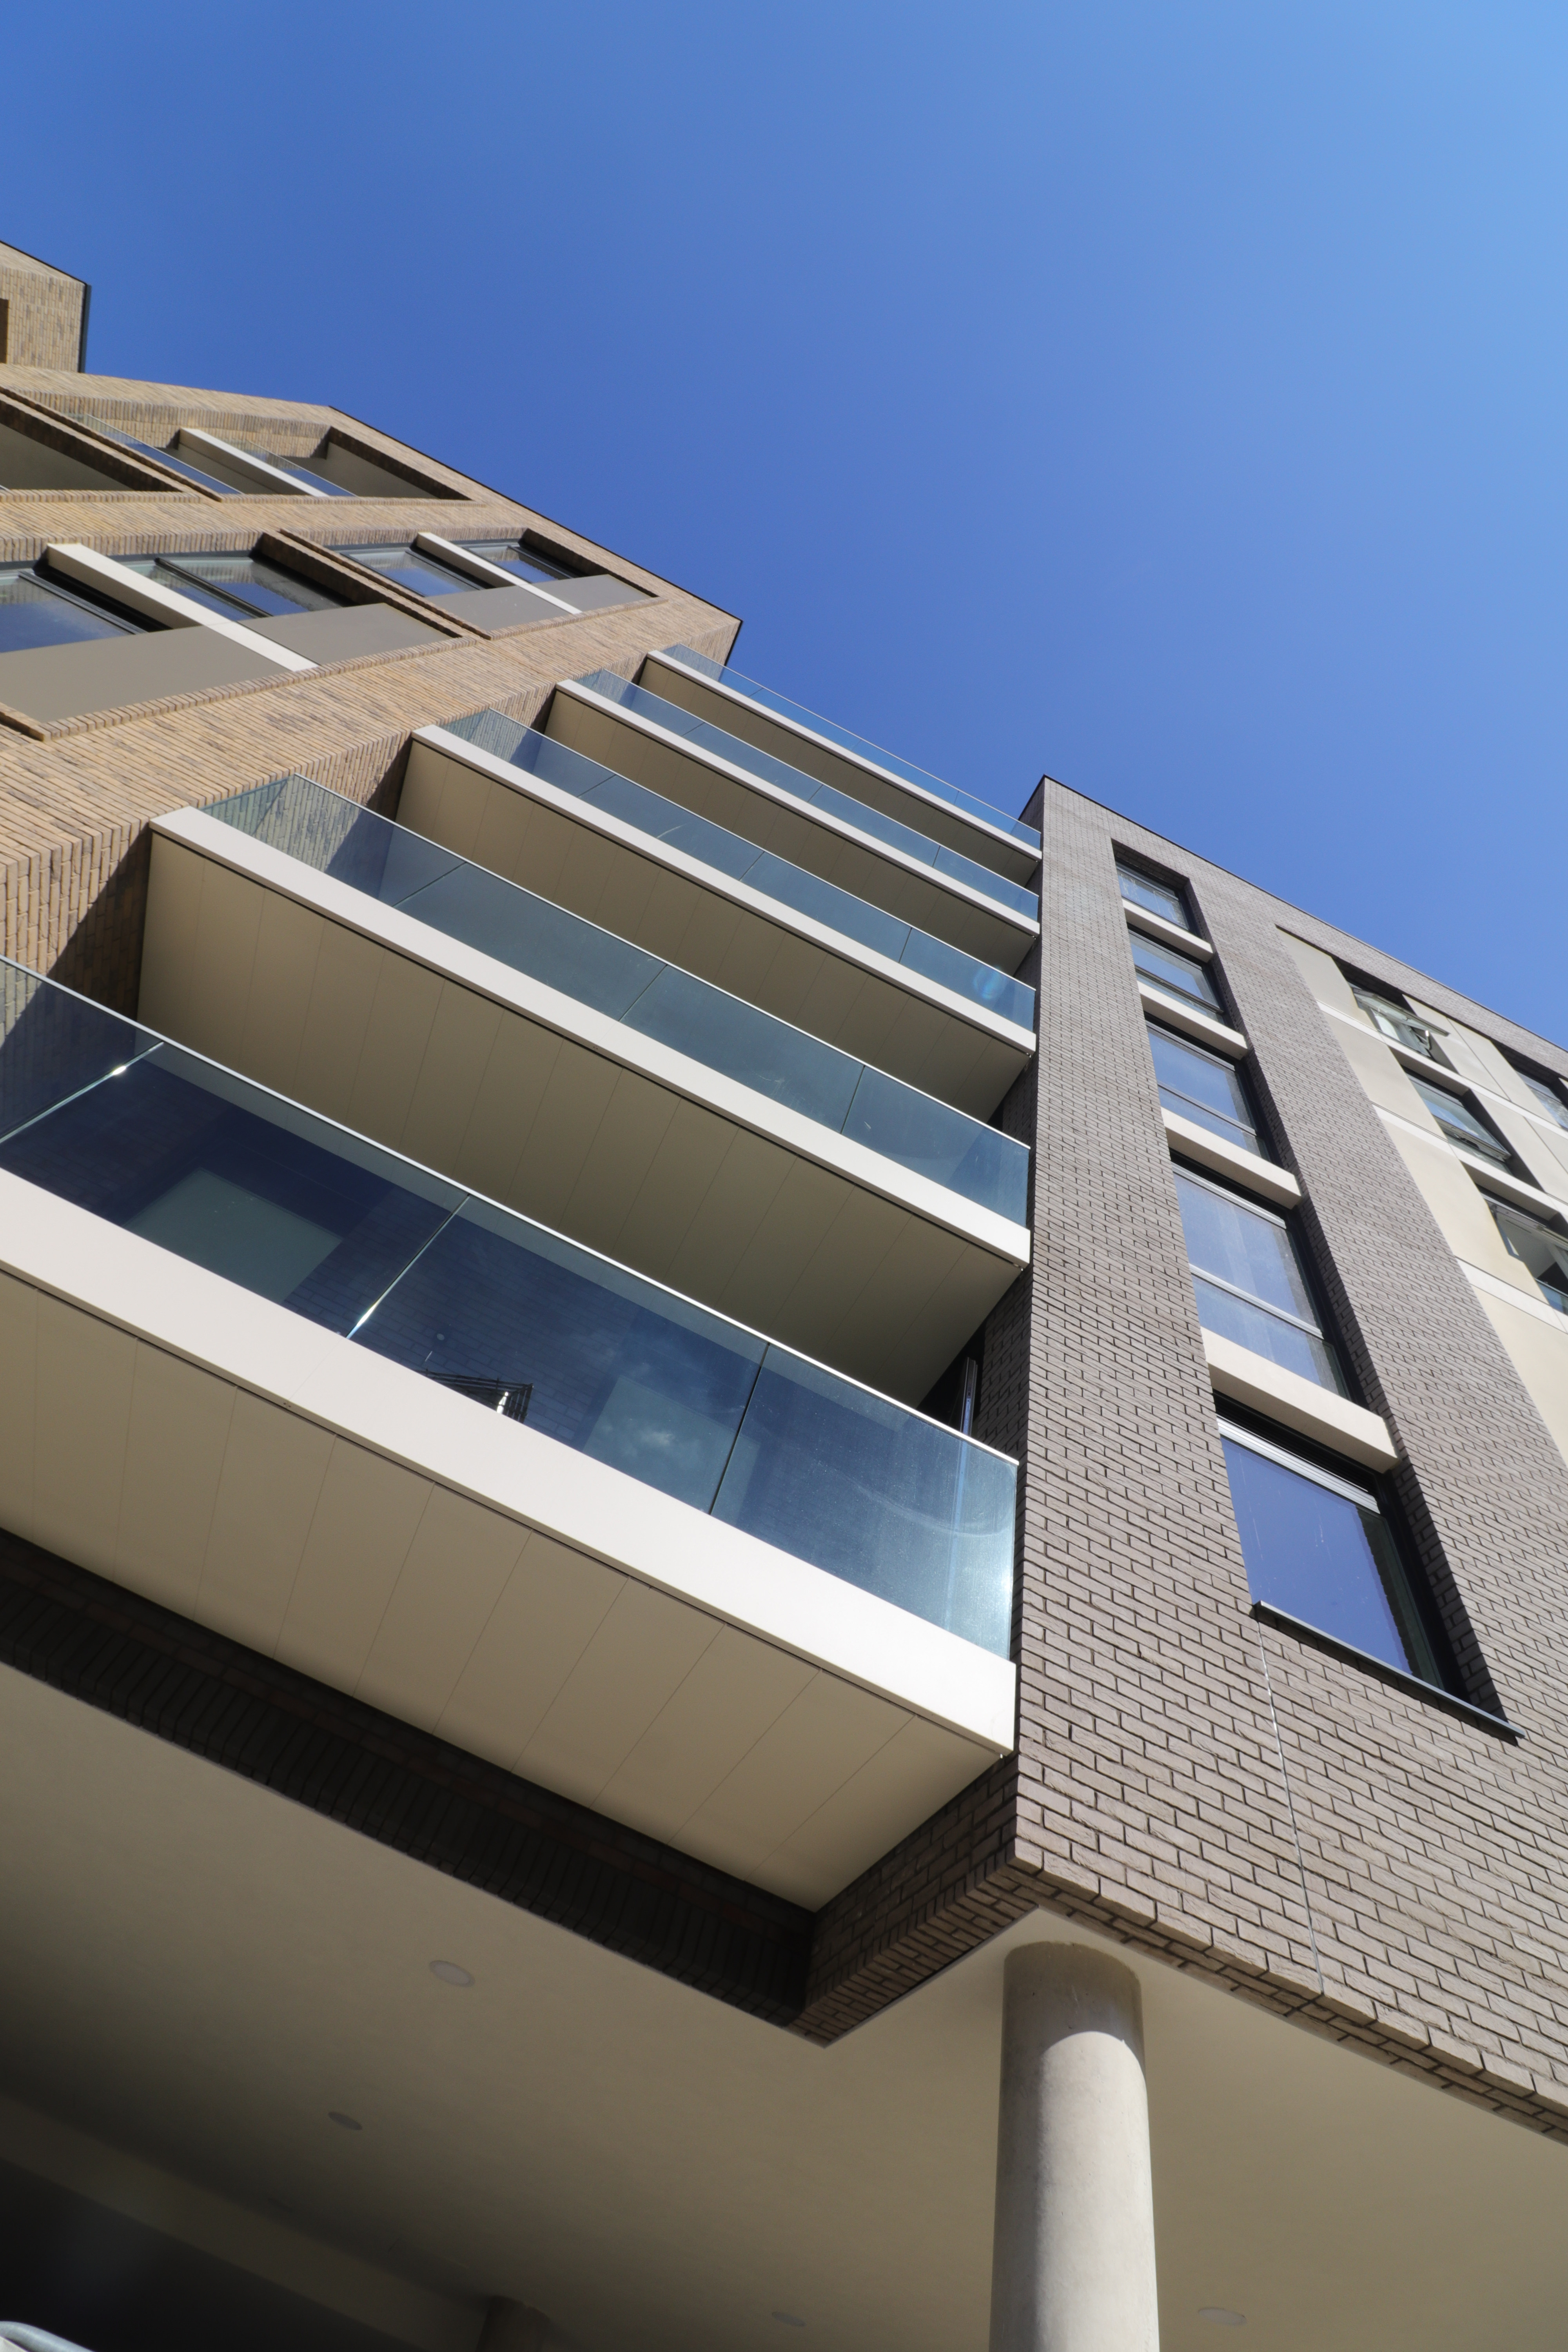 The Challenges of Inset Balconies